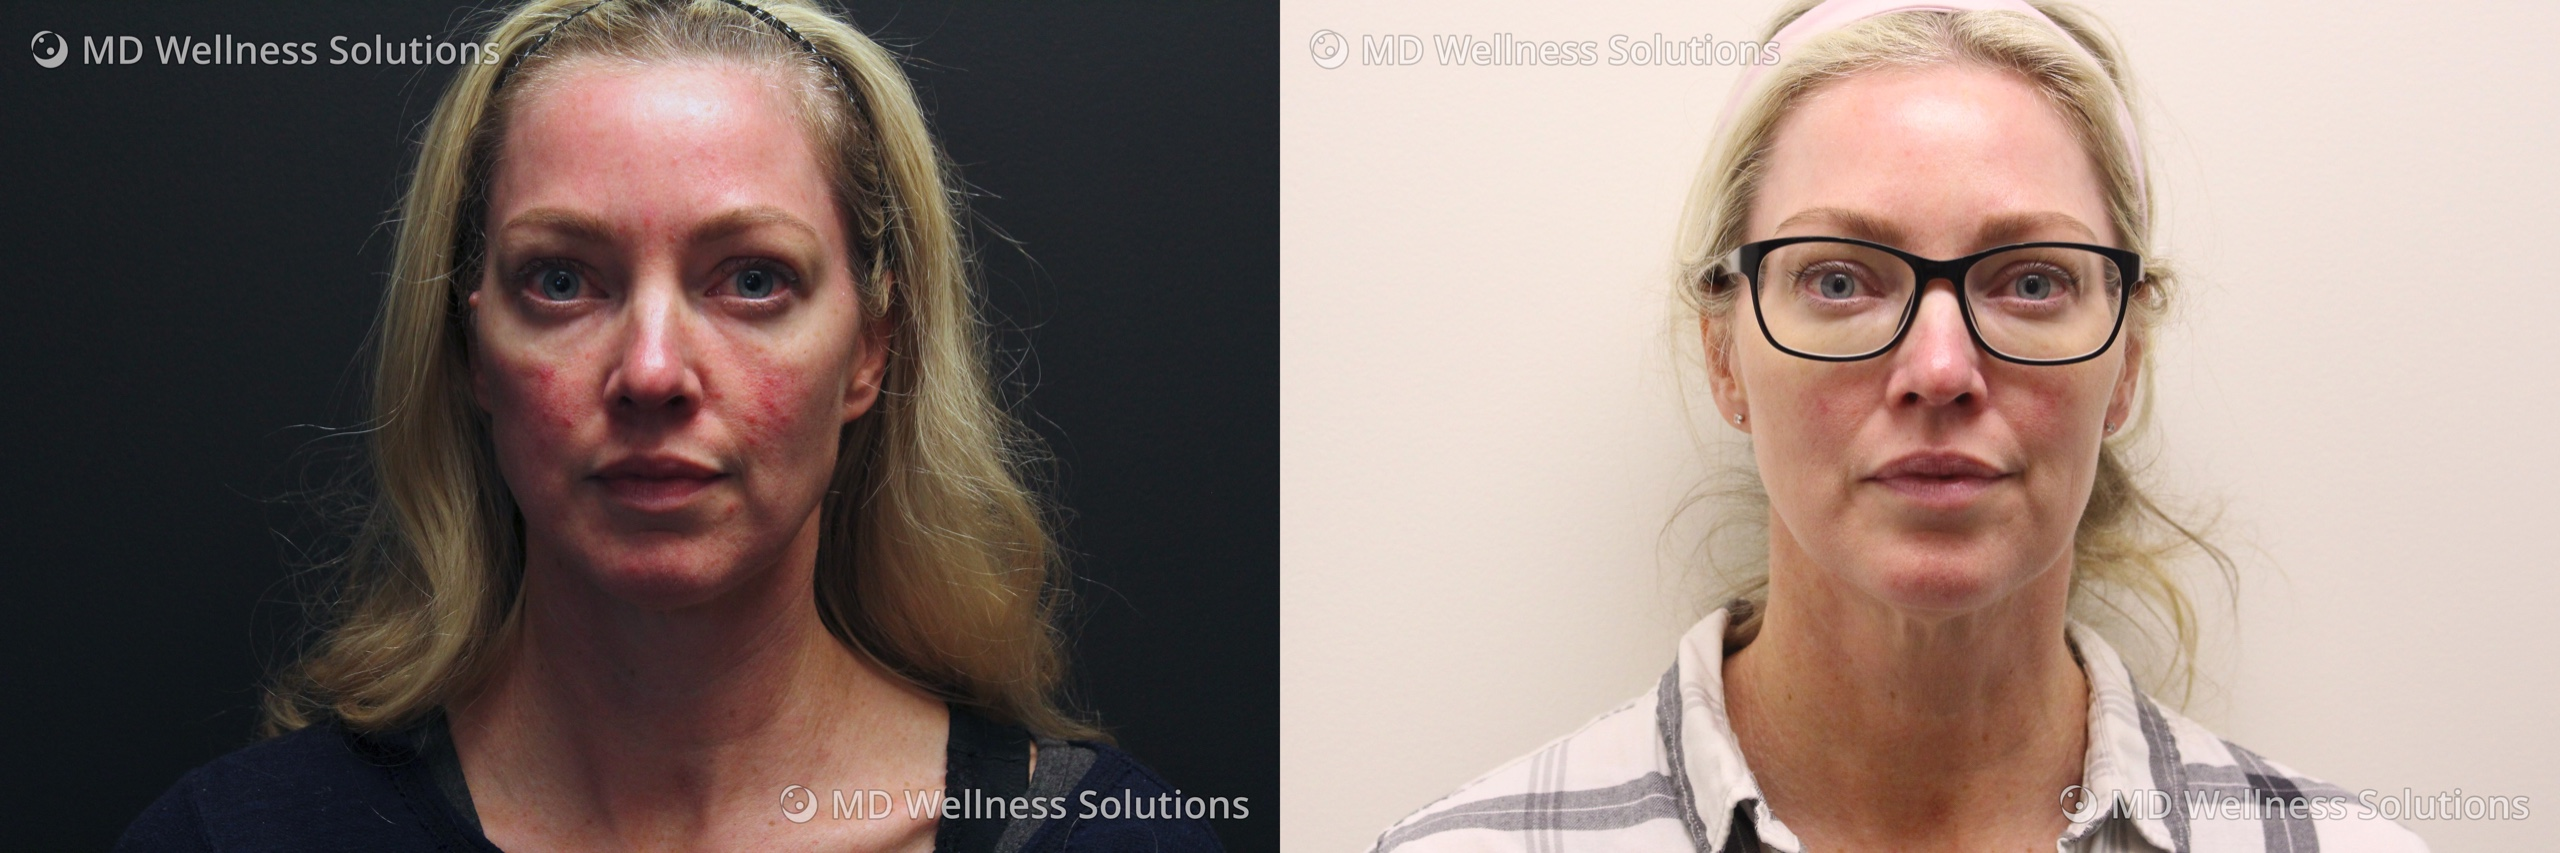 35-44 year old woman before and after IPL treatment